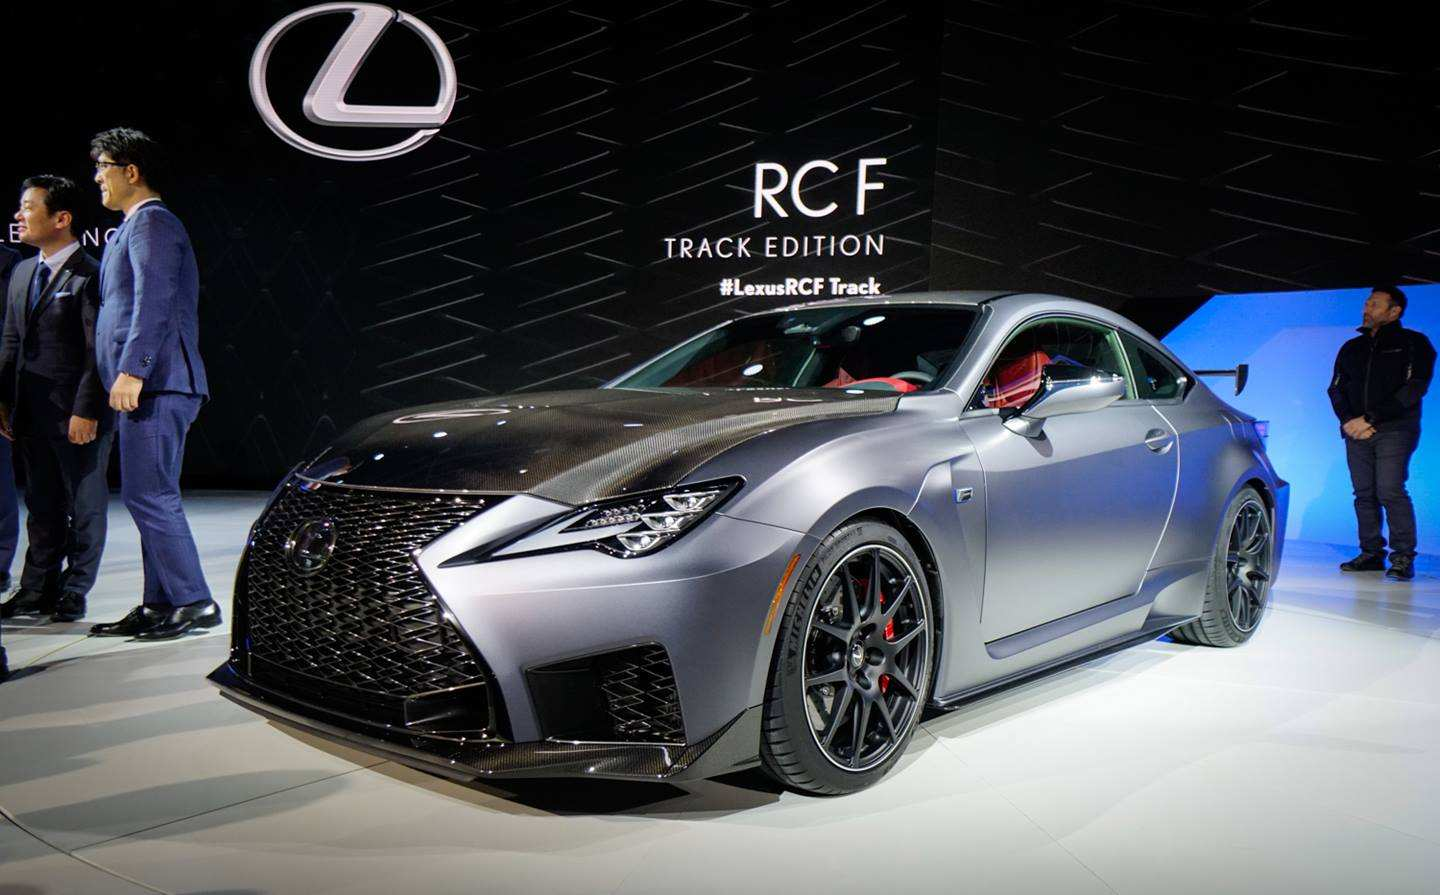 33 Best Rcf Lexus 2019 Photos